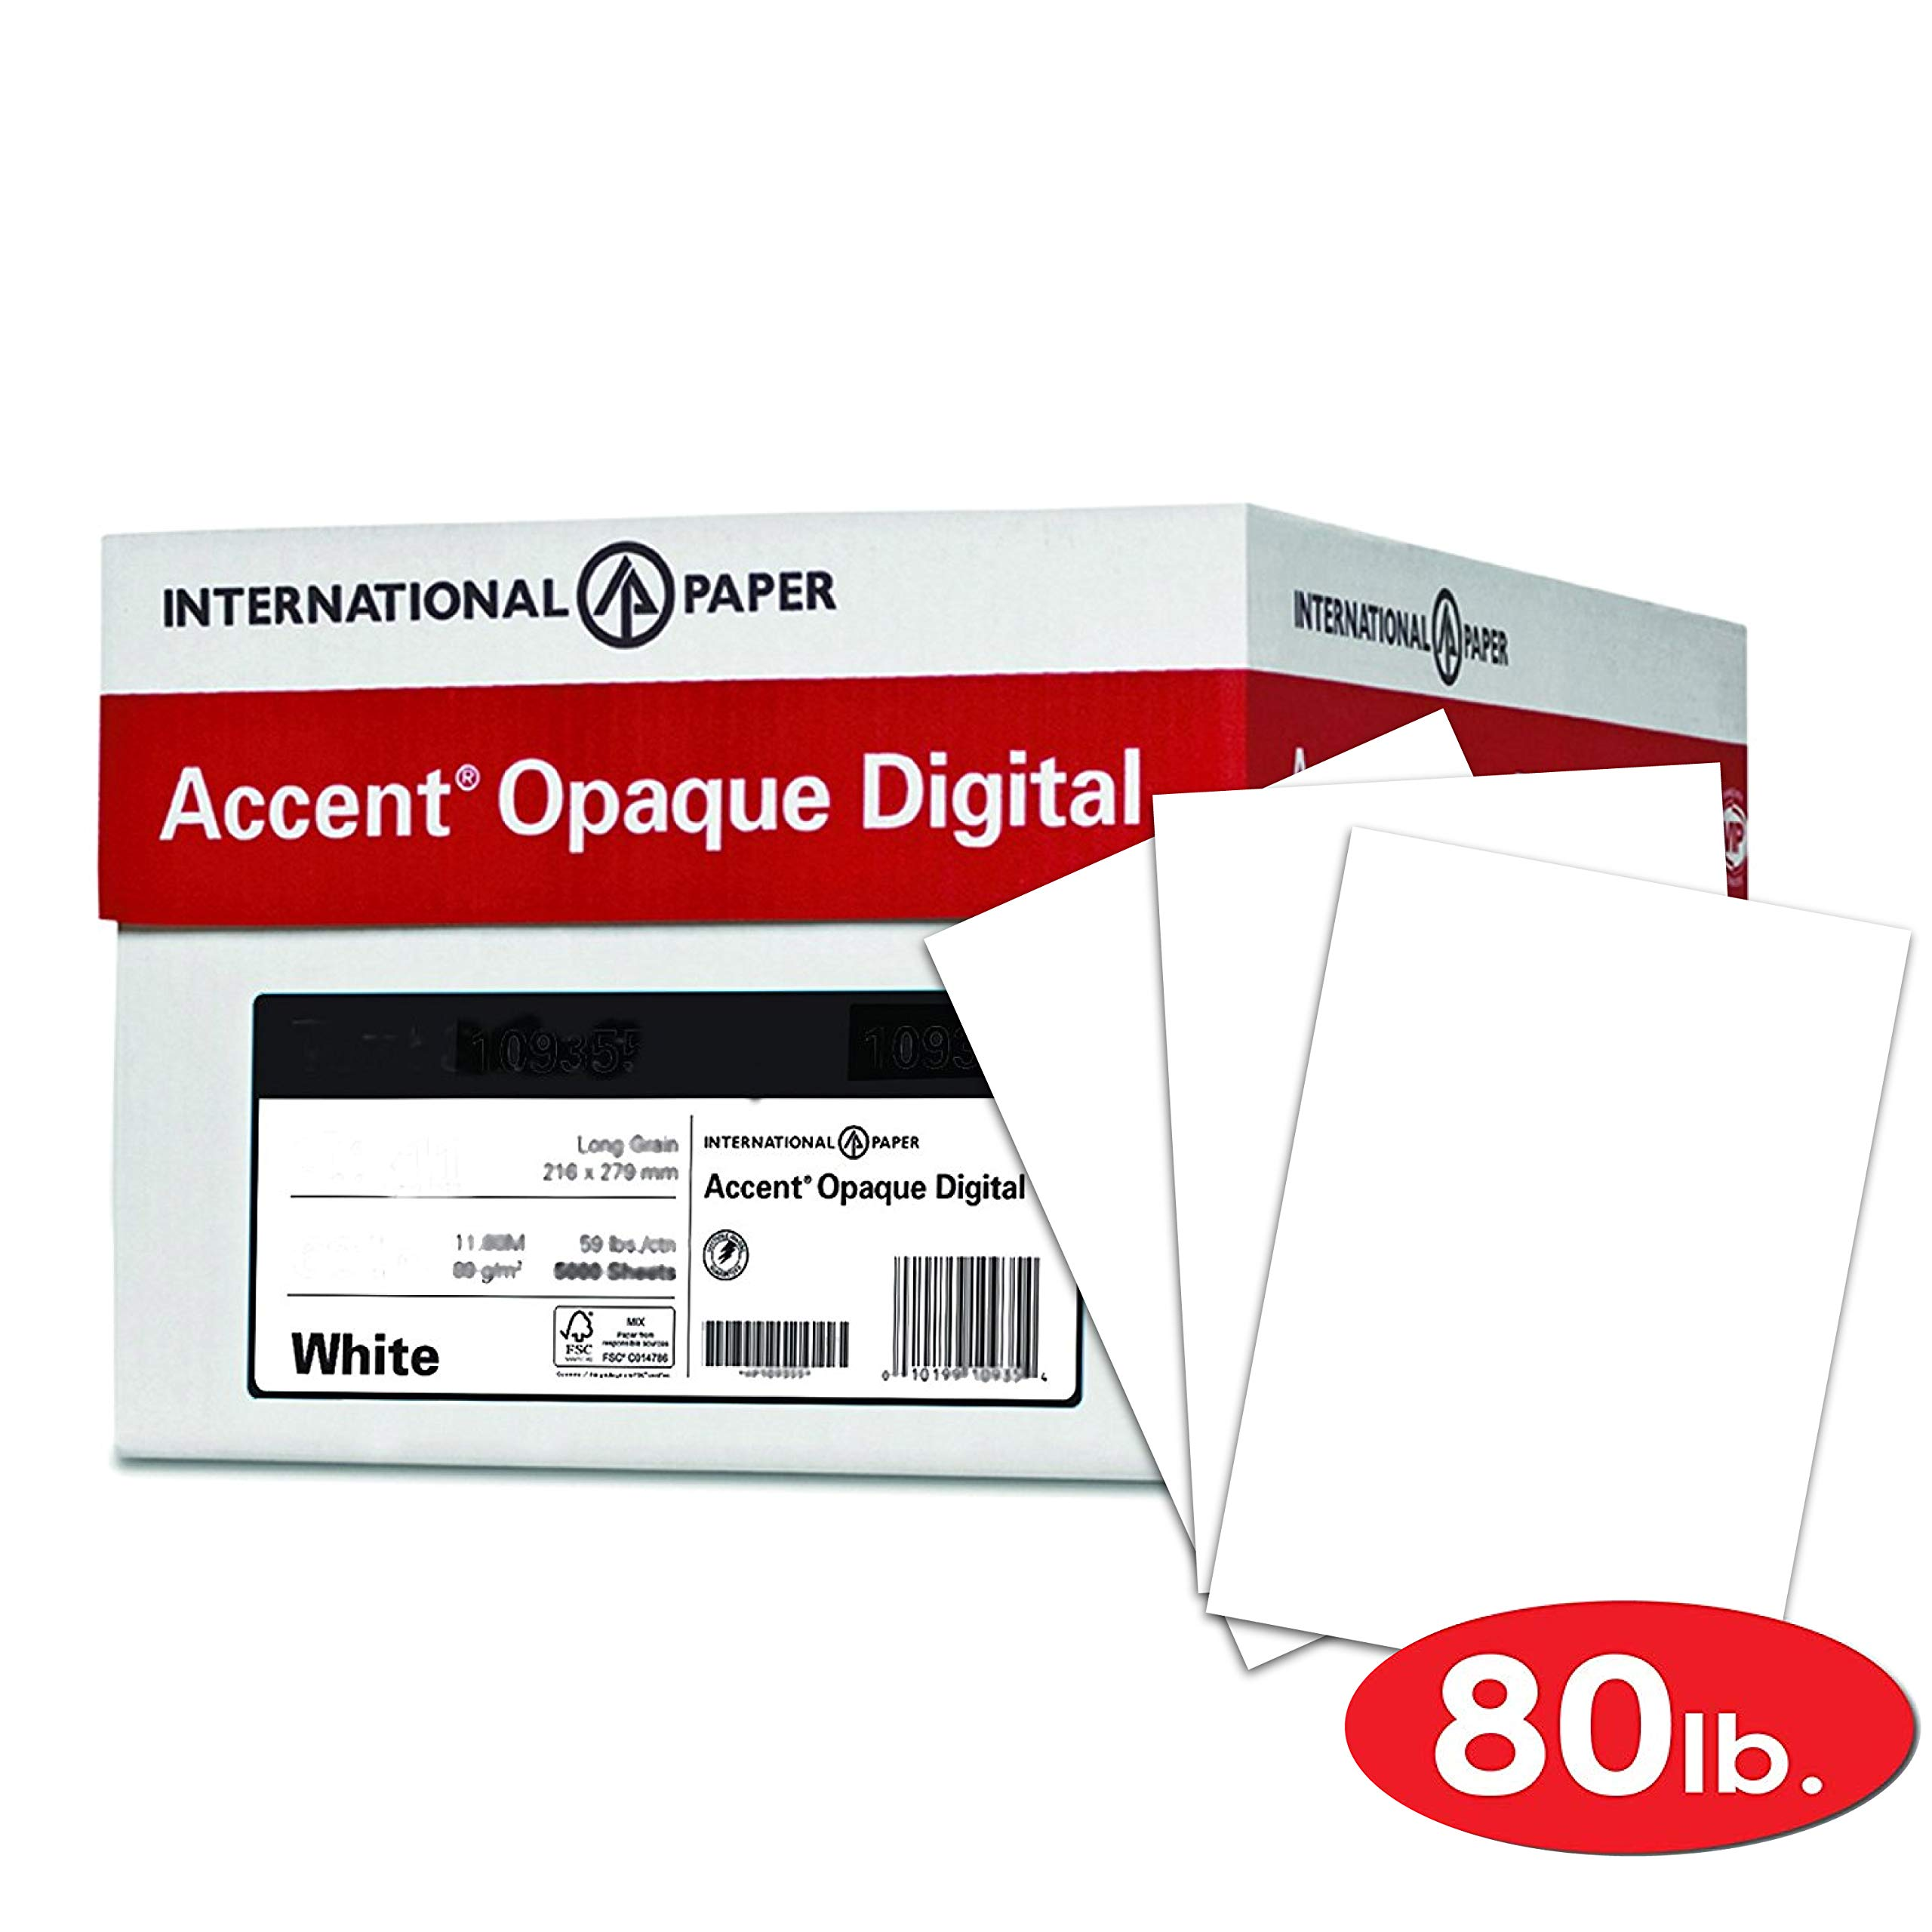 Accent Opaque Thick Cardstock Paper, White Paper, 80lb Cover, 216 gsm, 19x13 Paper, 97 Bright, 4 Ream Case / 800 Sheets, Smooth, Heavy Card Stock (188070C)